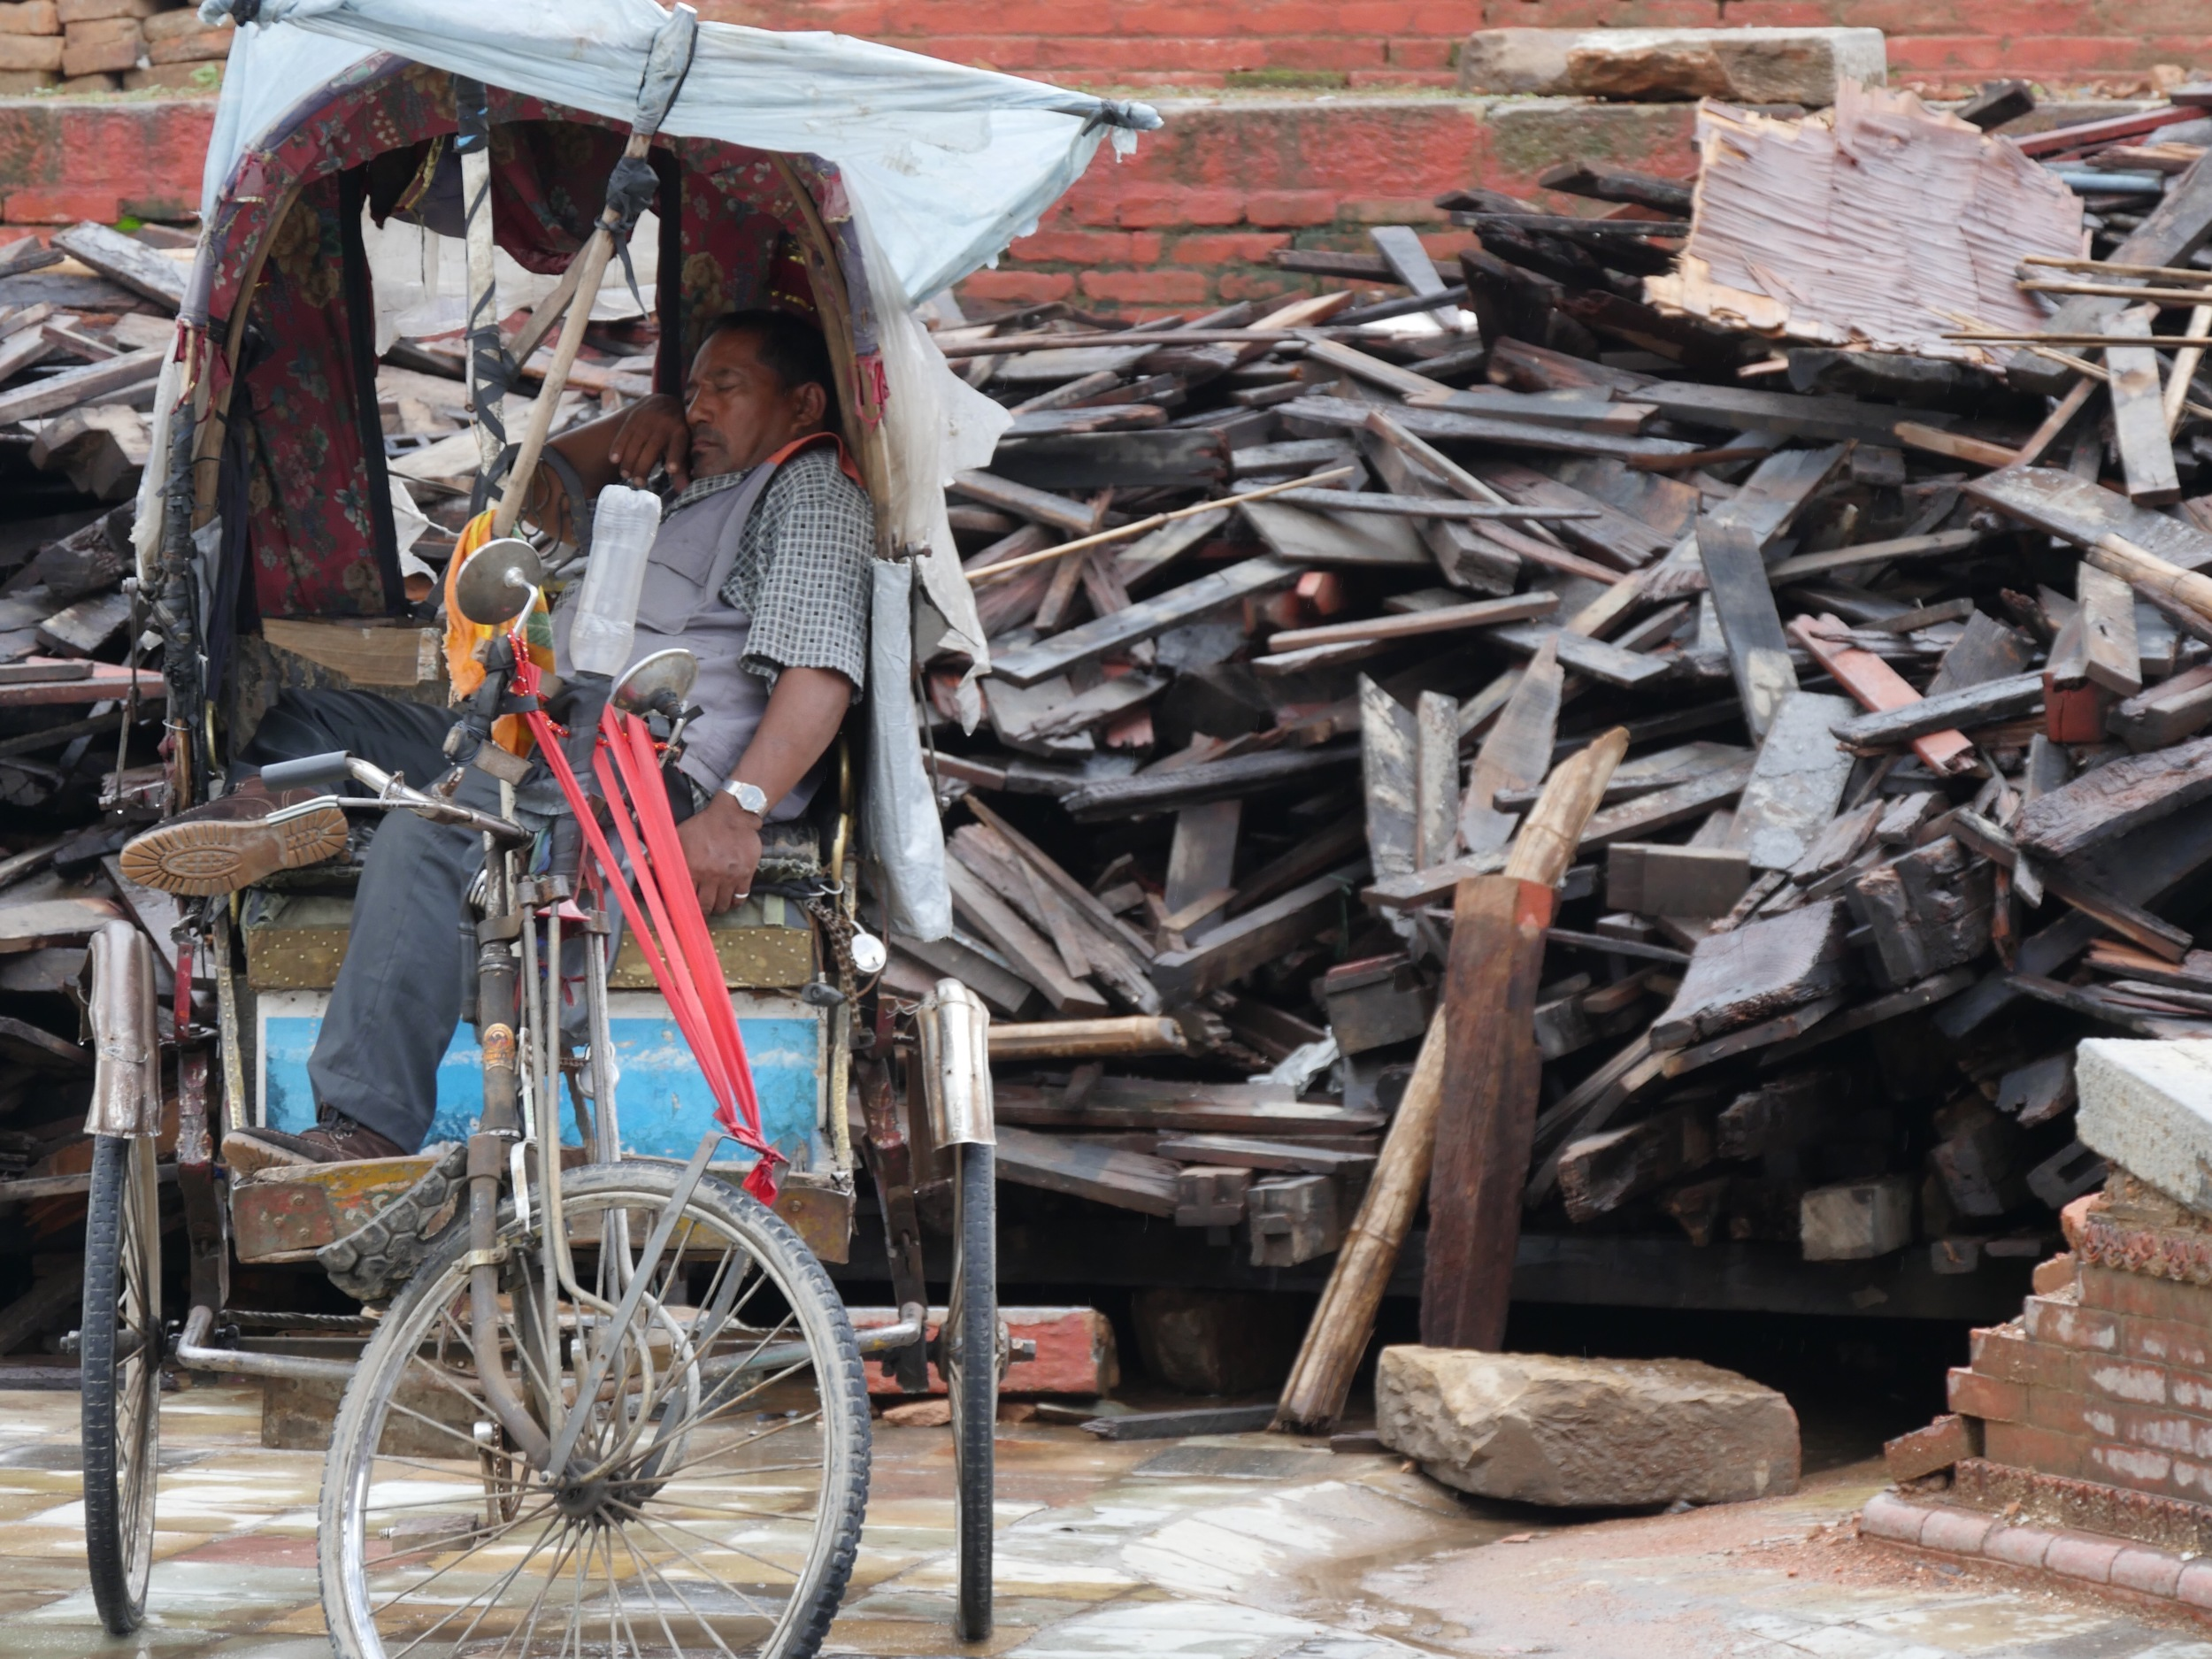 A rickshaw driver waits for customers against the backdrop of earthquake salvage.